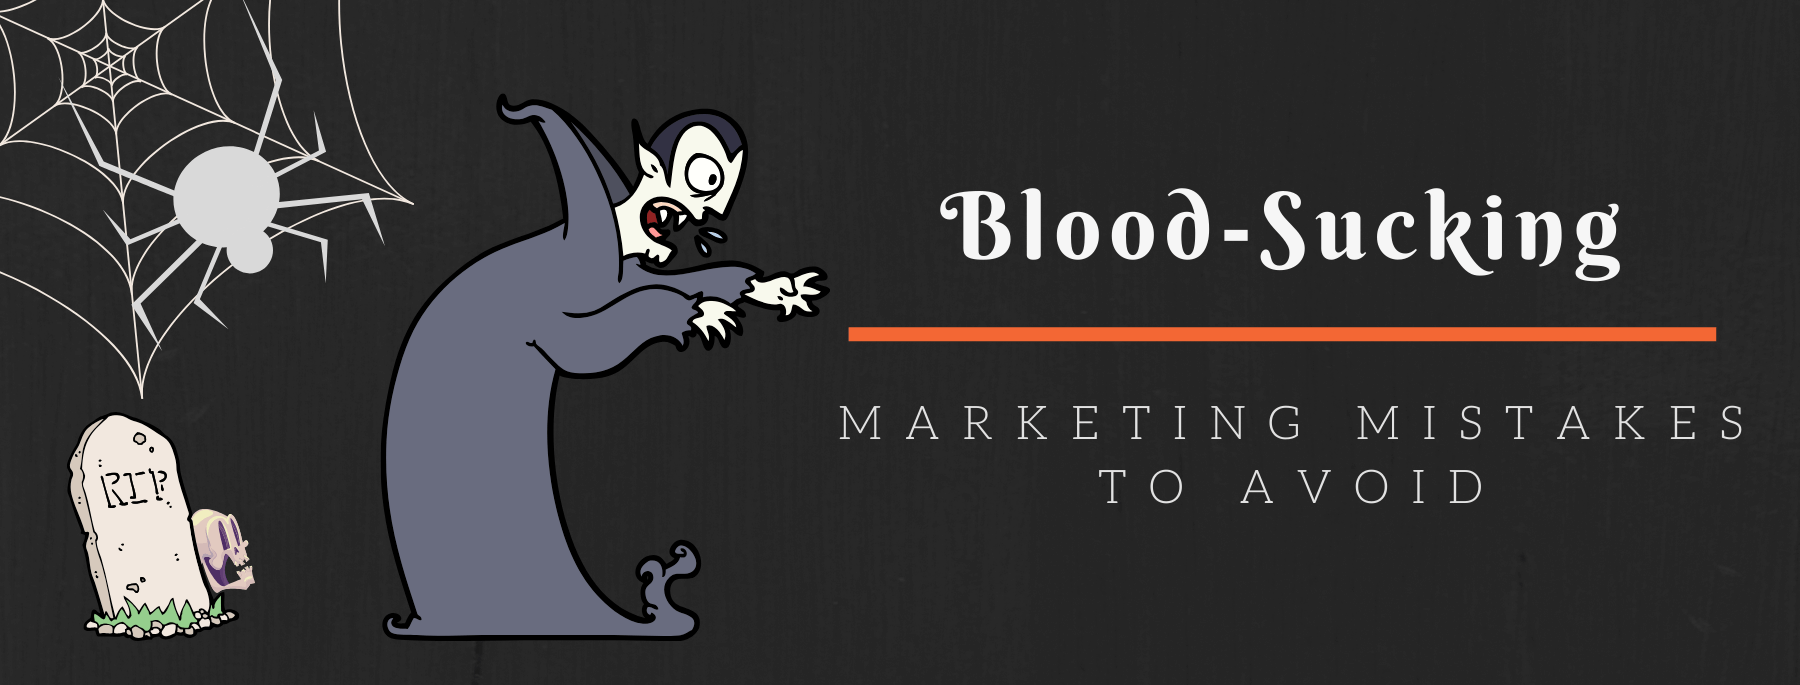 Blood-Sucking Marketing Mistakes to Avoid